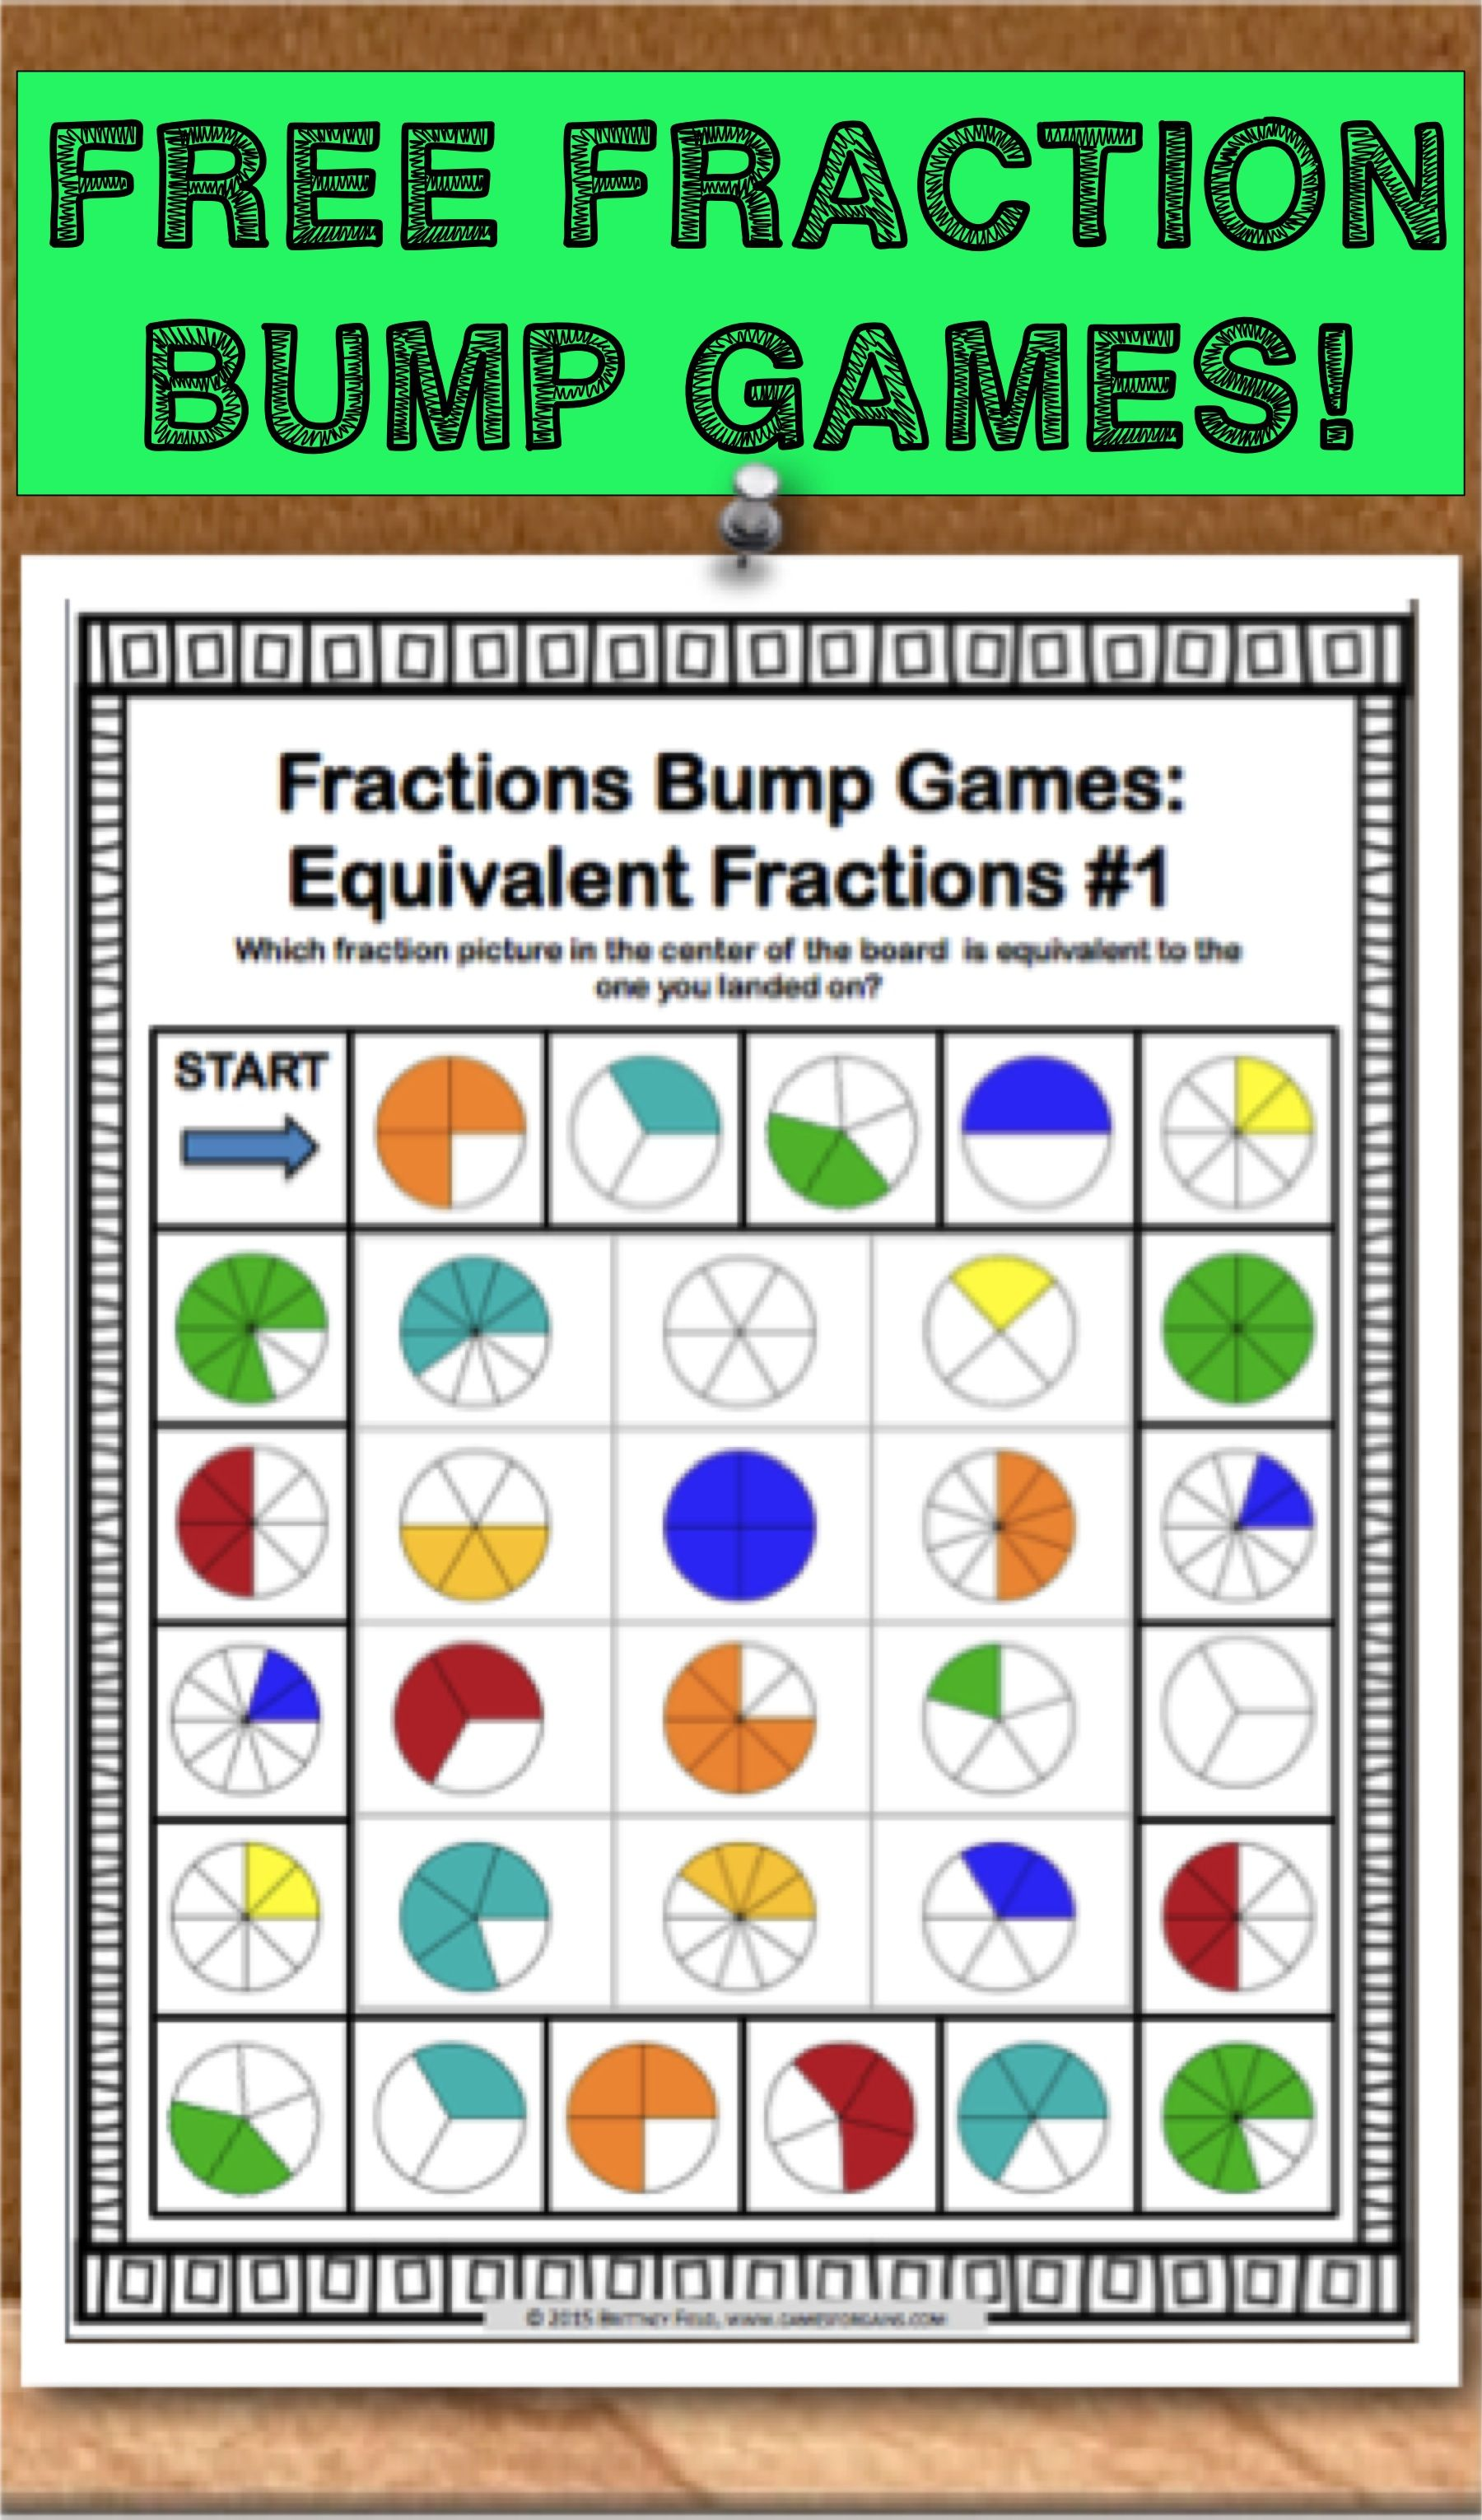 Get This And 11 Other Fraction Bumps Games As An Exclusive Freebie When You Subscribe To The Mailing List At Games4g Math Fractions Fourth Grade Math Fractions